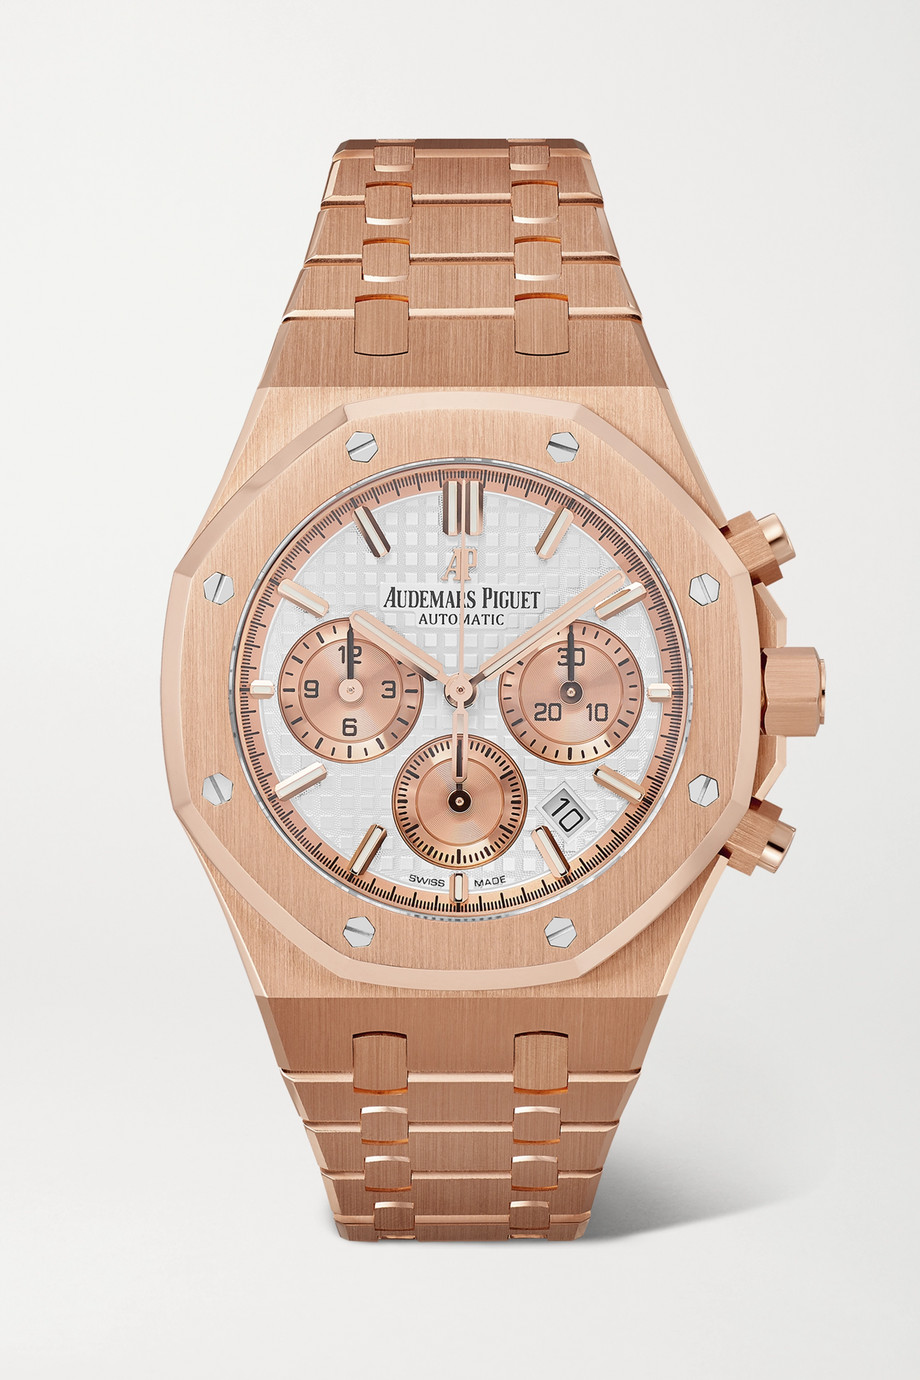 Audemars Piguet Royal Oak Automatic Chronograph 38mm 18-karat pink gold watch